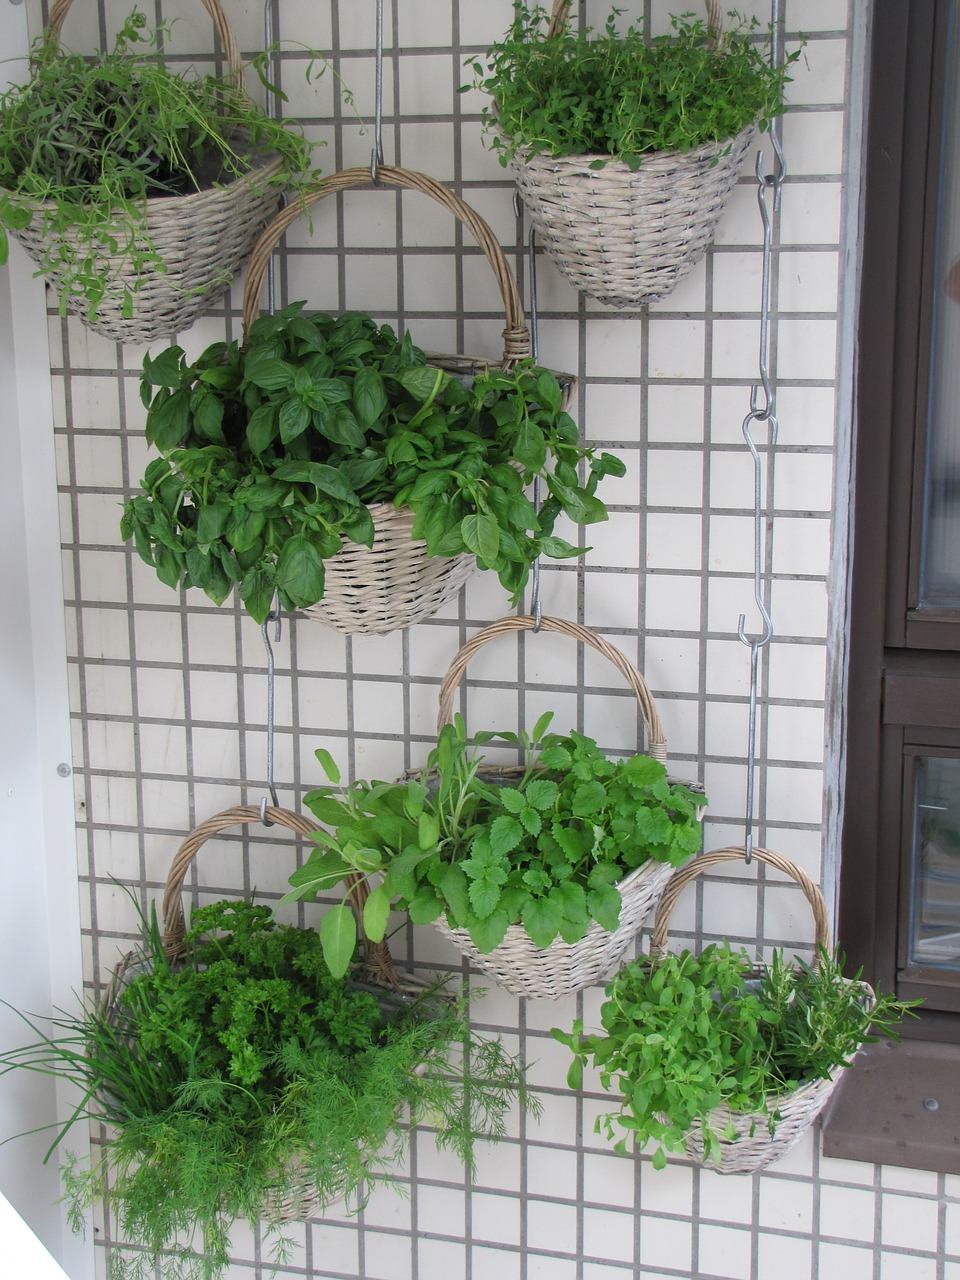 Herbs growing in baskets hanging on wall